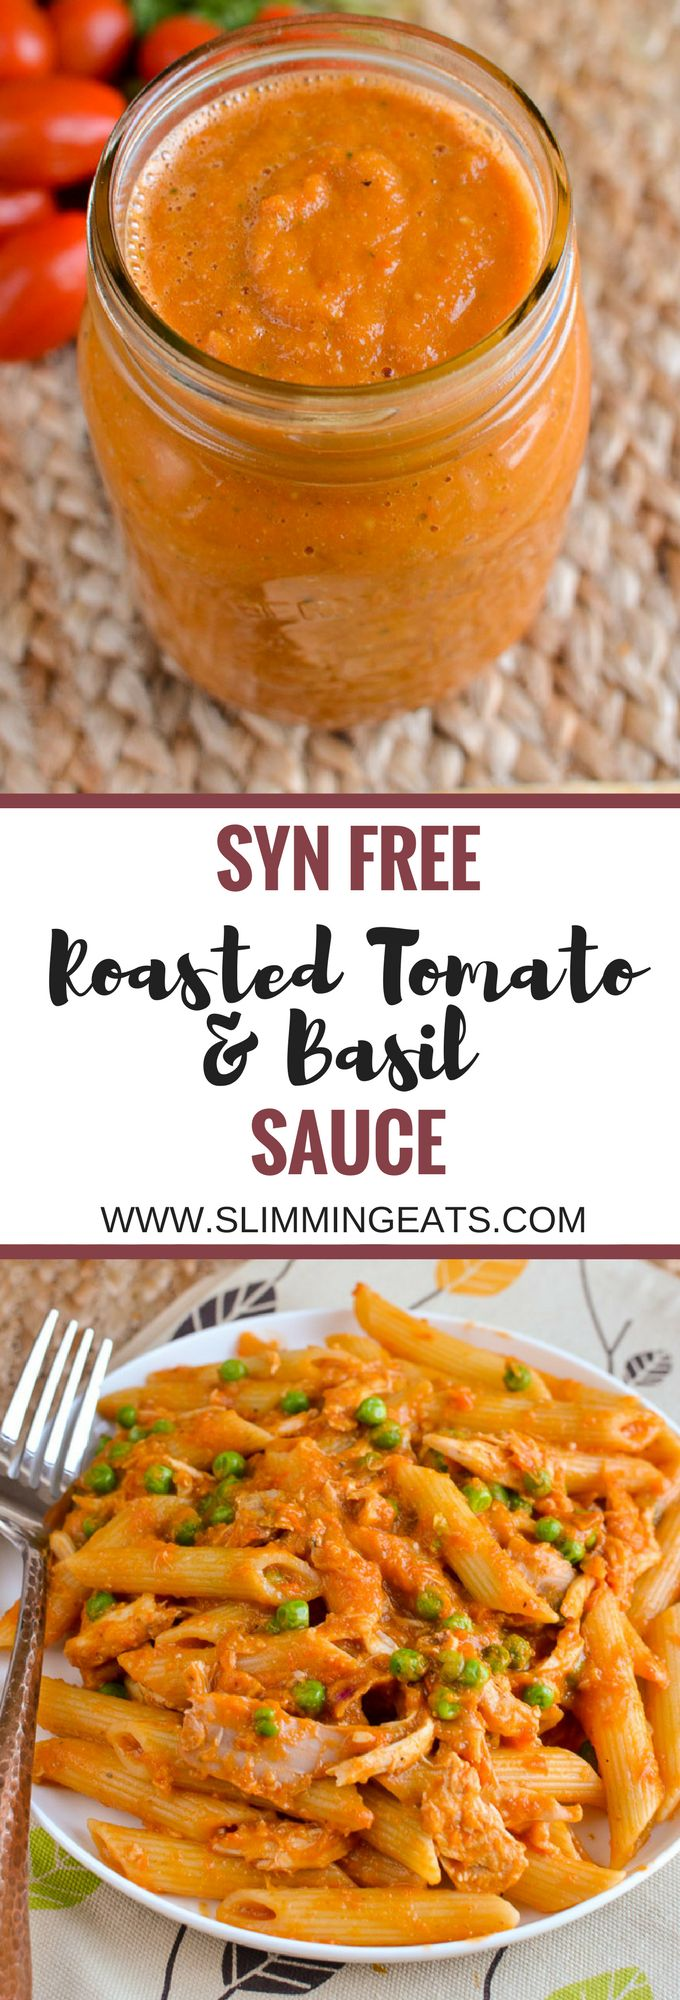 Slimming world syn free sauces